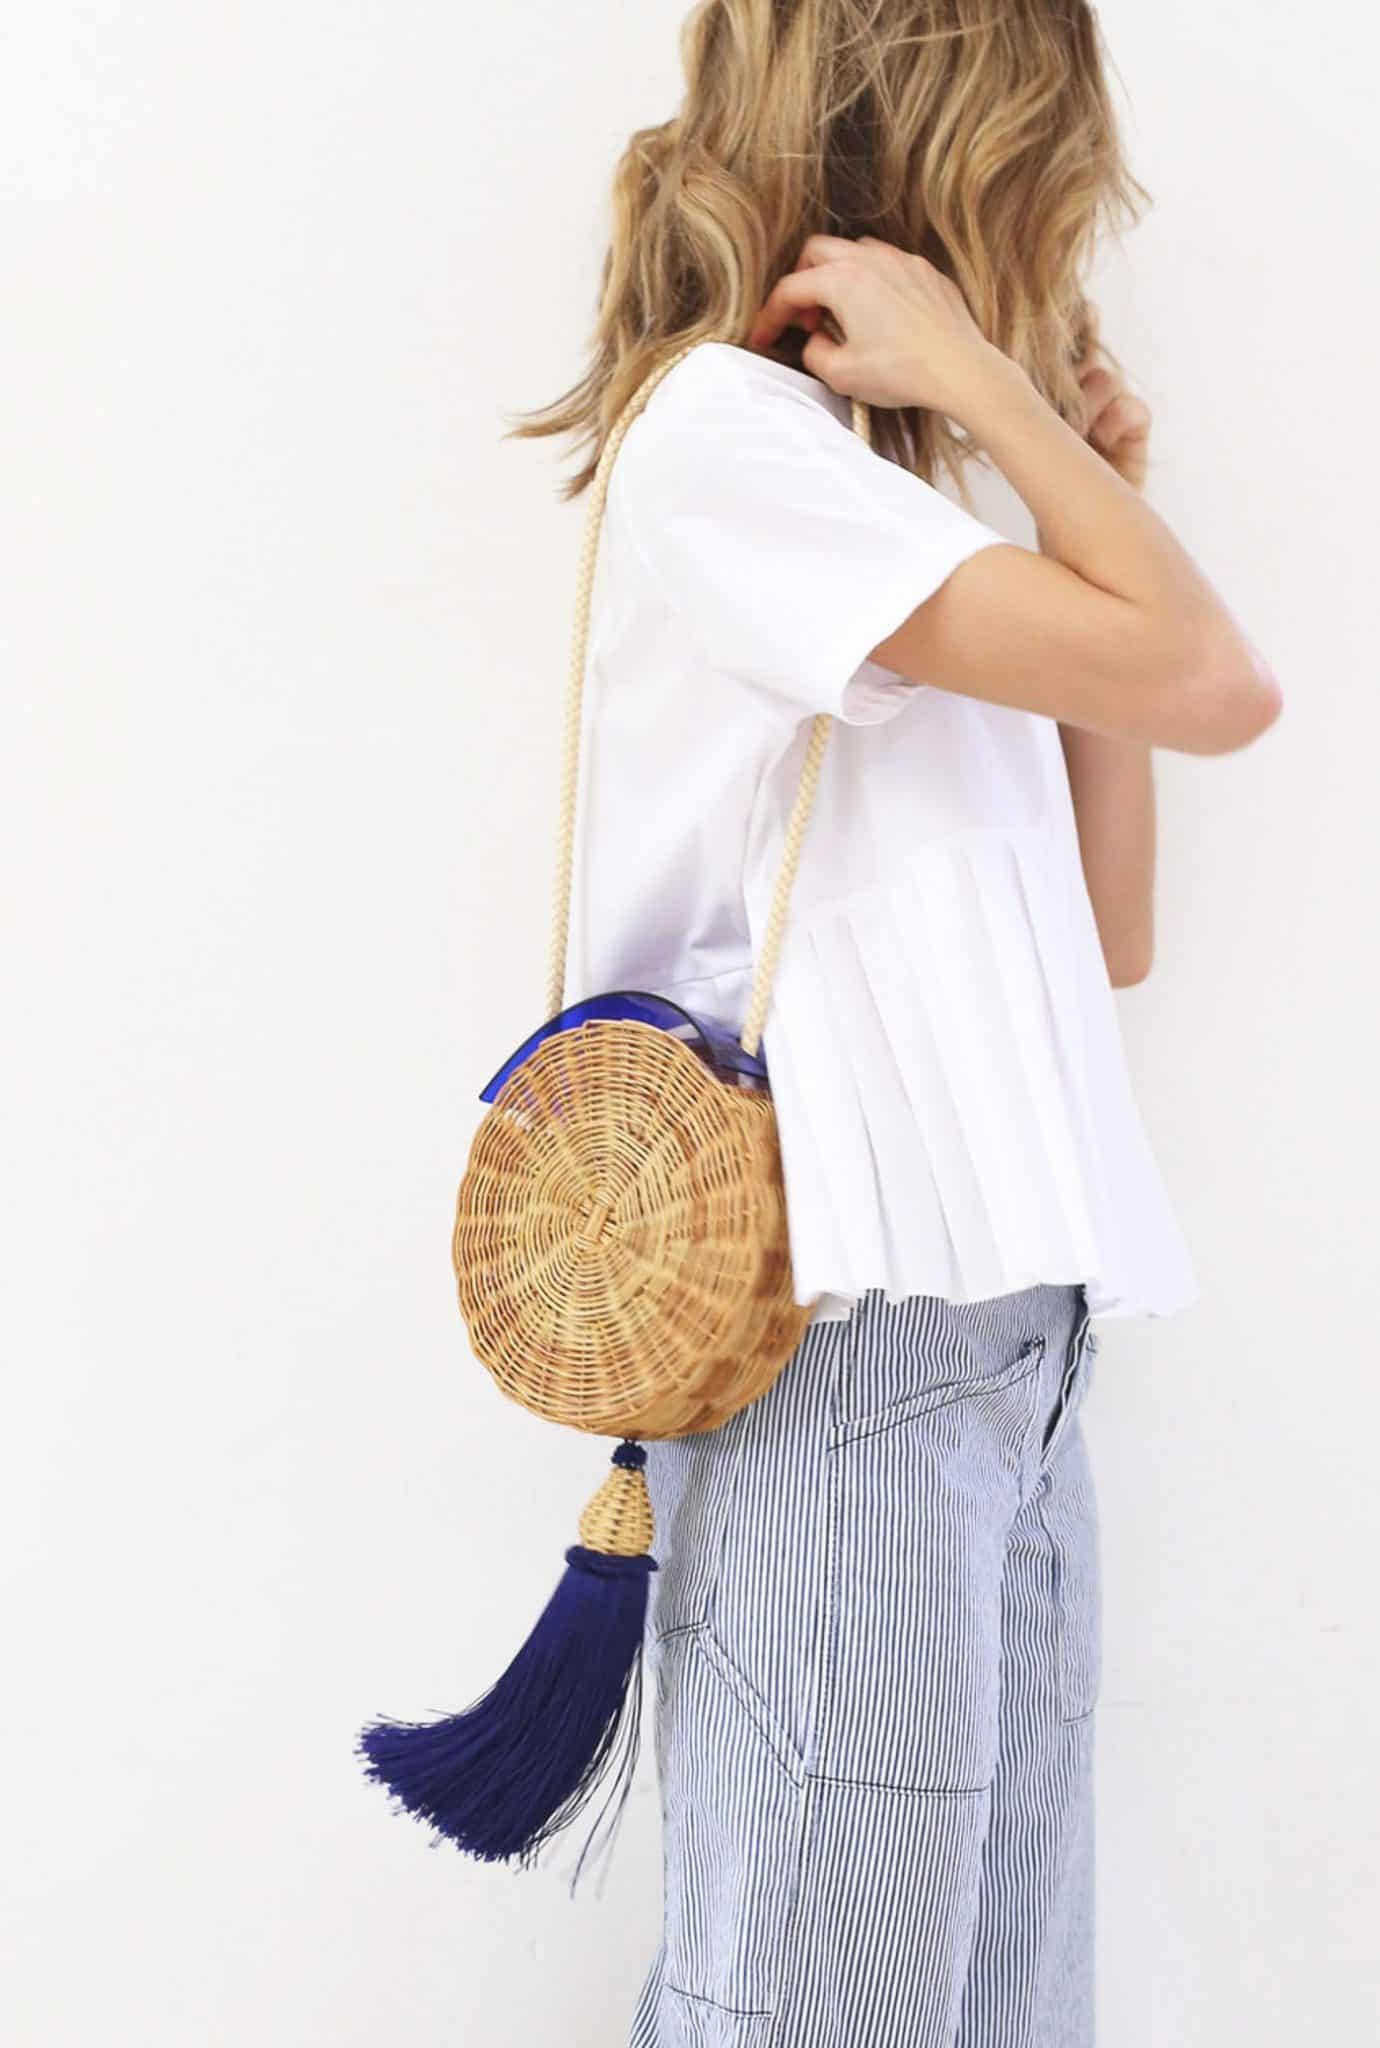 woven bags for summer, summer bags